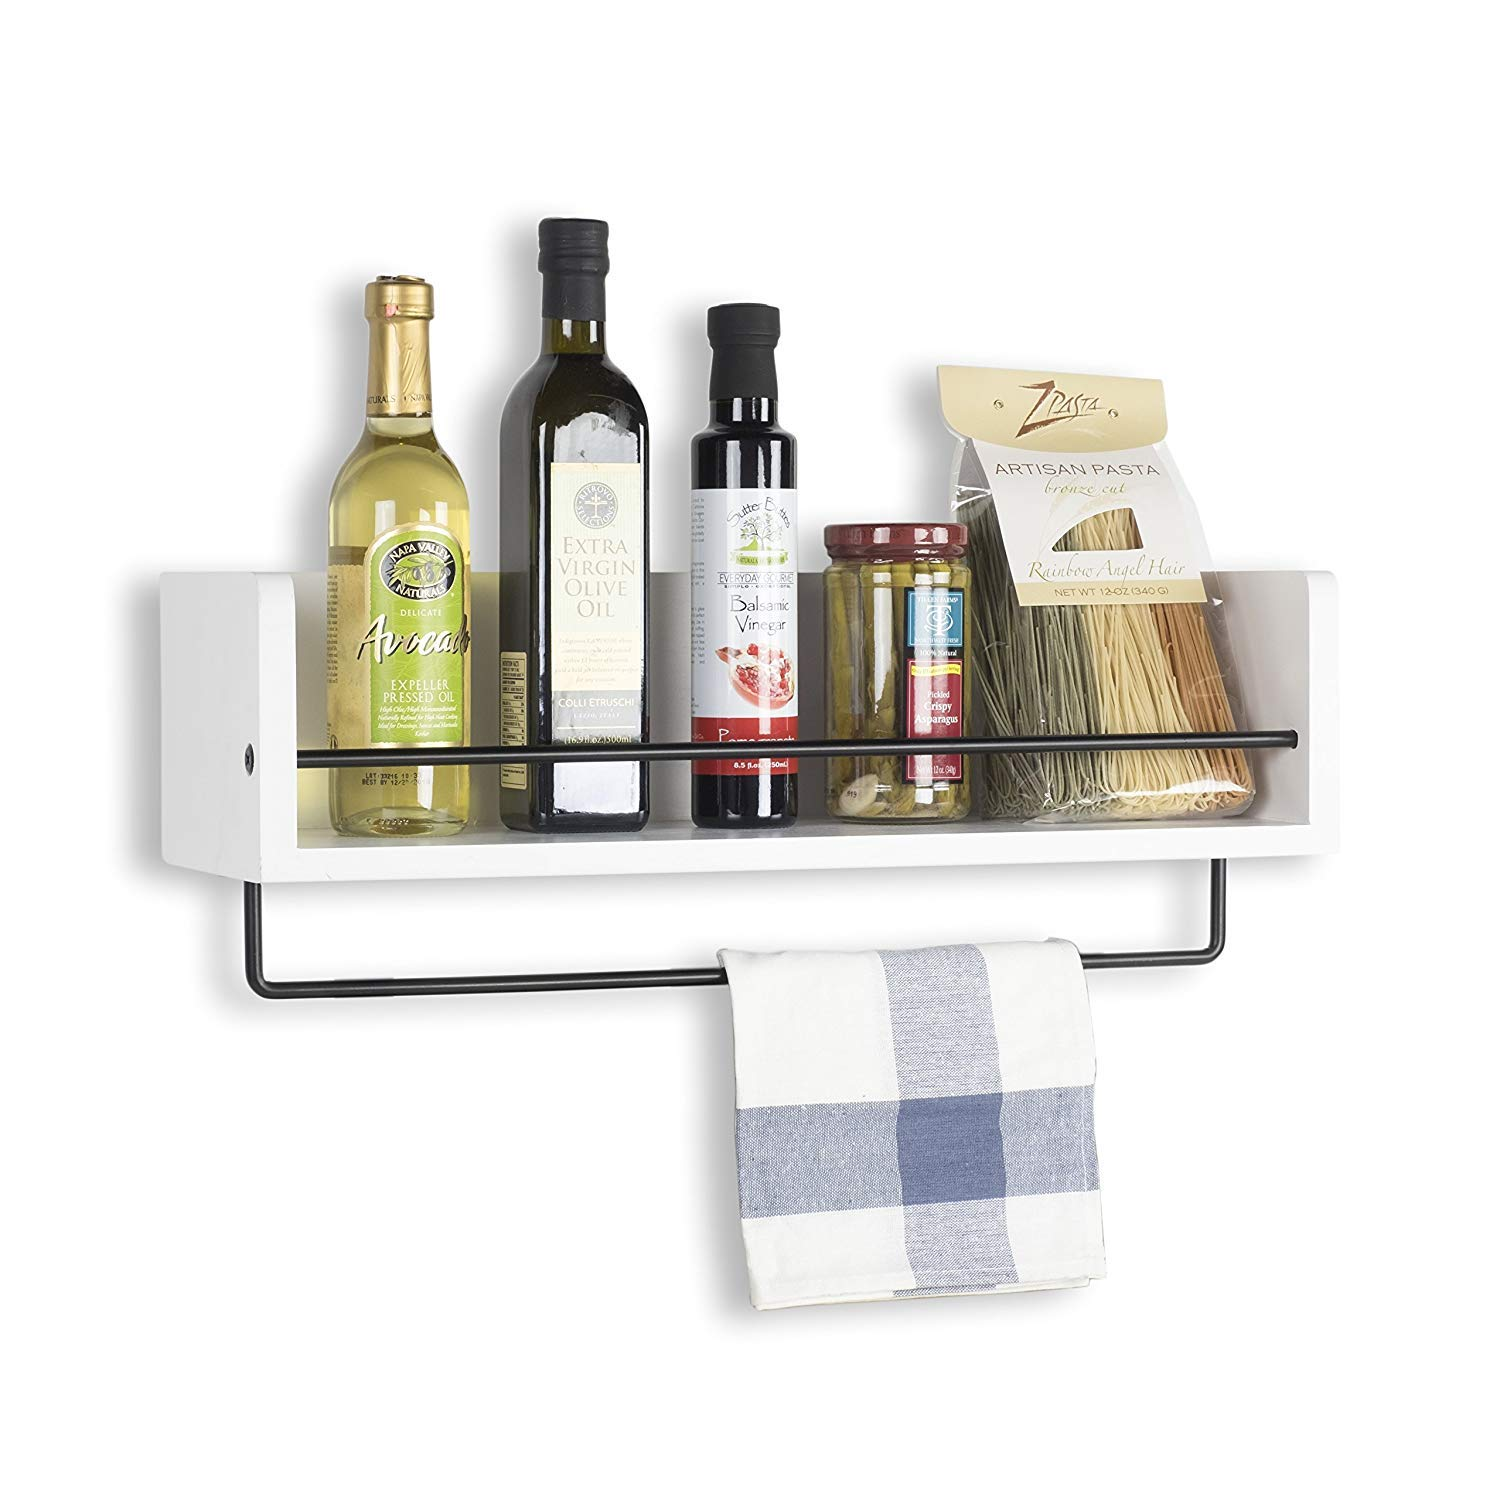 Indian Decor 28476 Kitchen Mdf Wood Wall Shelf With Metal